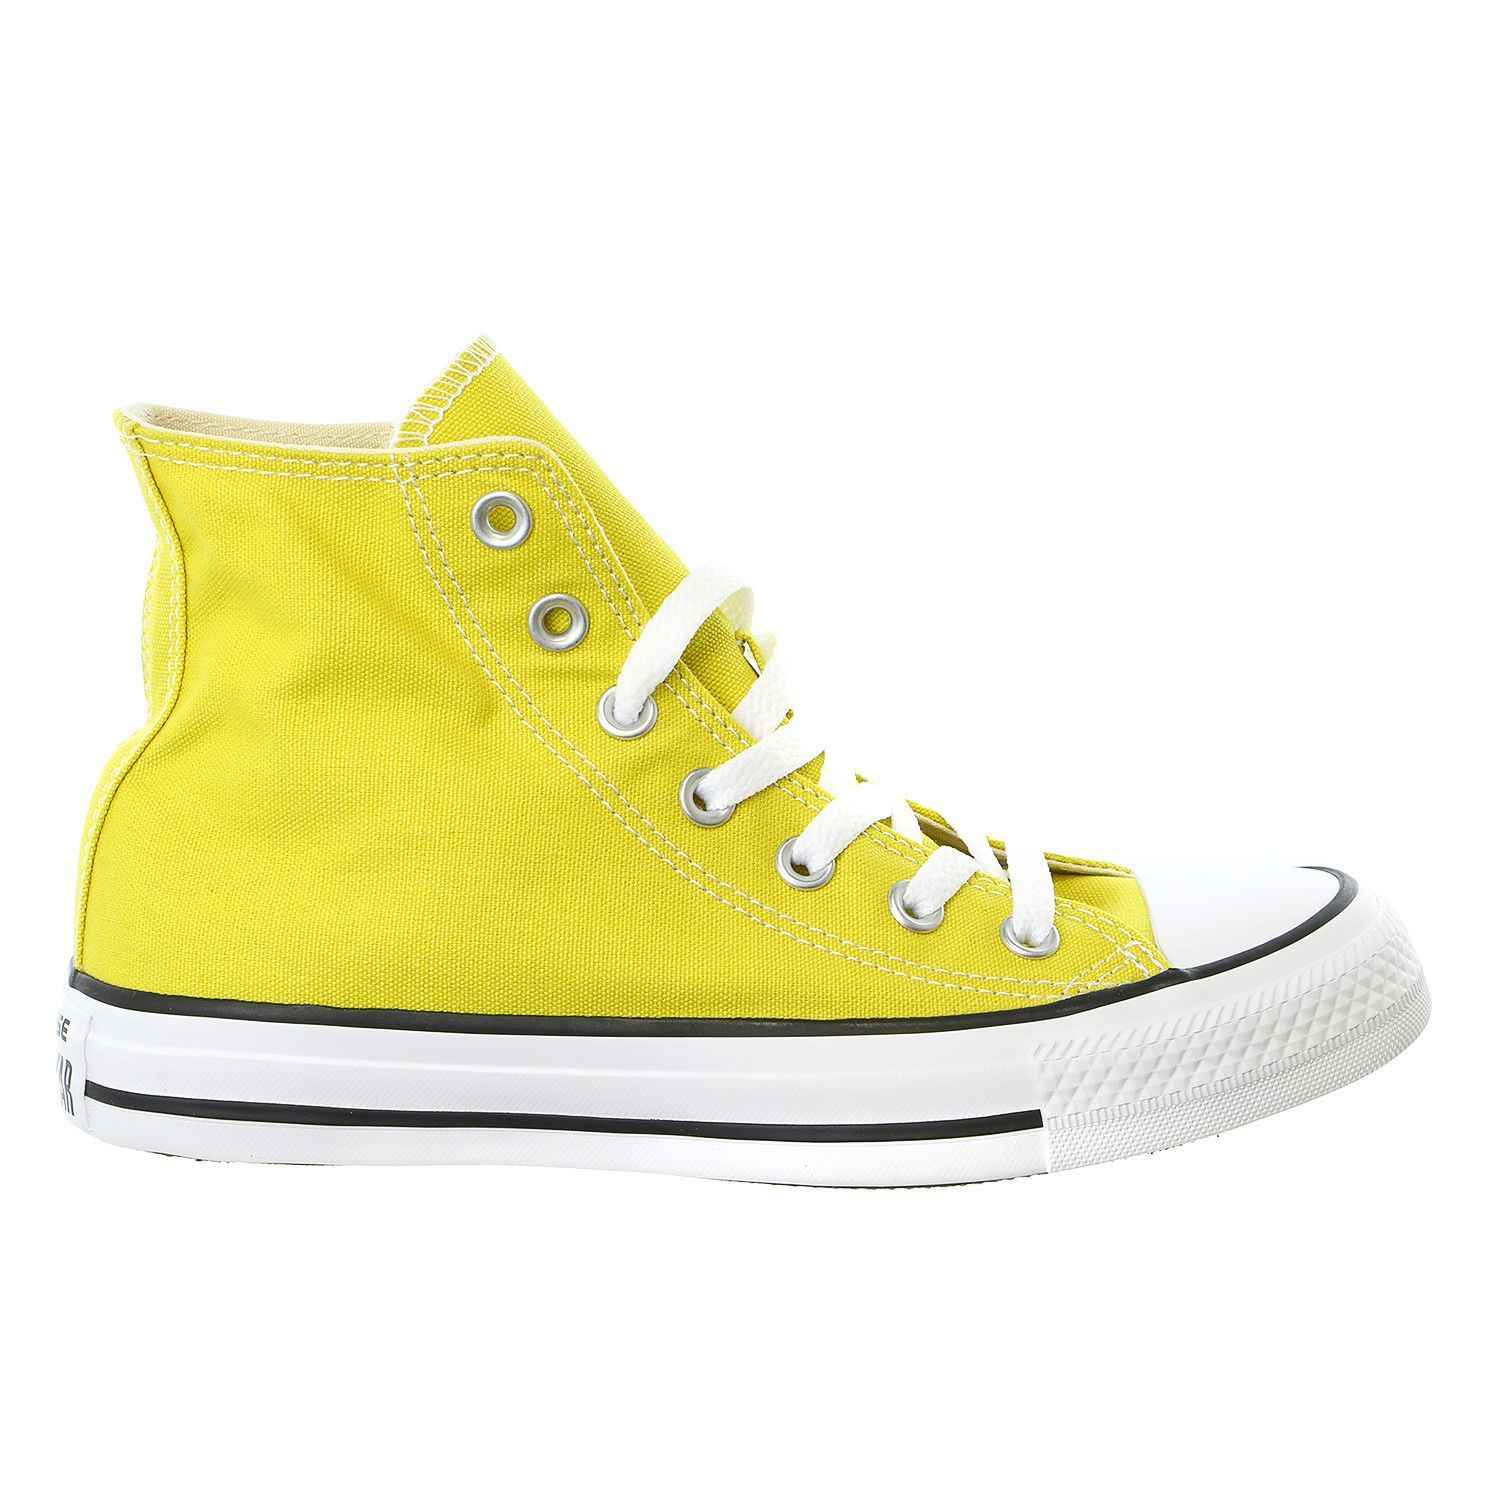 Converse Unisex Chuck Taylor All Star Hi Top Fashion Sneaker Shoe - Mens